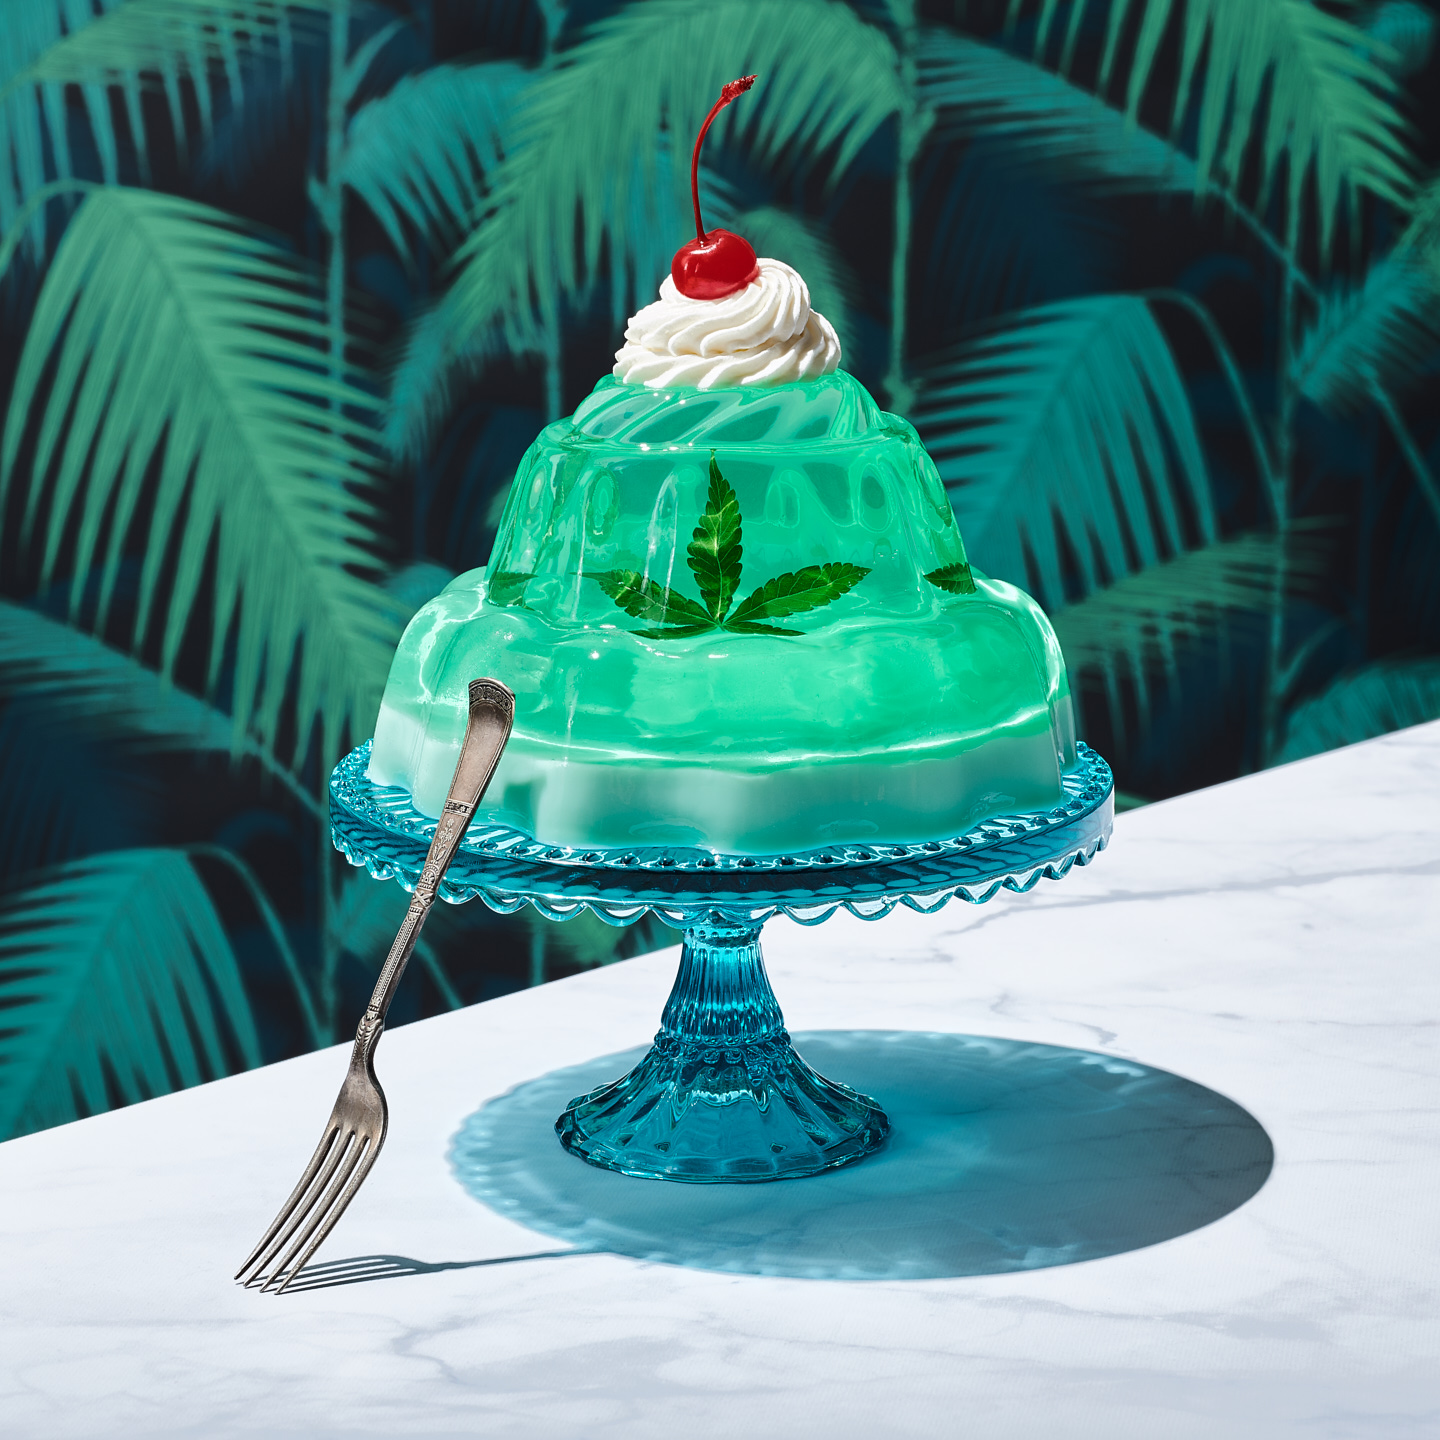 Mello Jello By Matthew Roharik Top Cannabis Photographer Los Angeles California Winner of Communication Arts 2019 Award of Excellence  Photography Annual